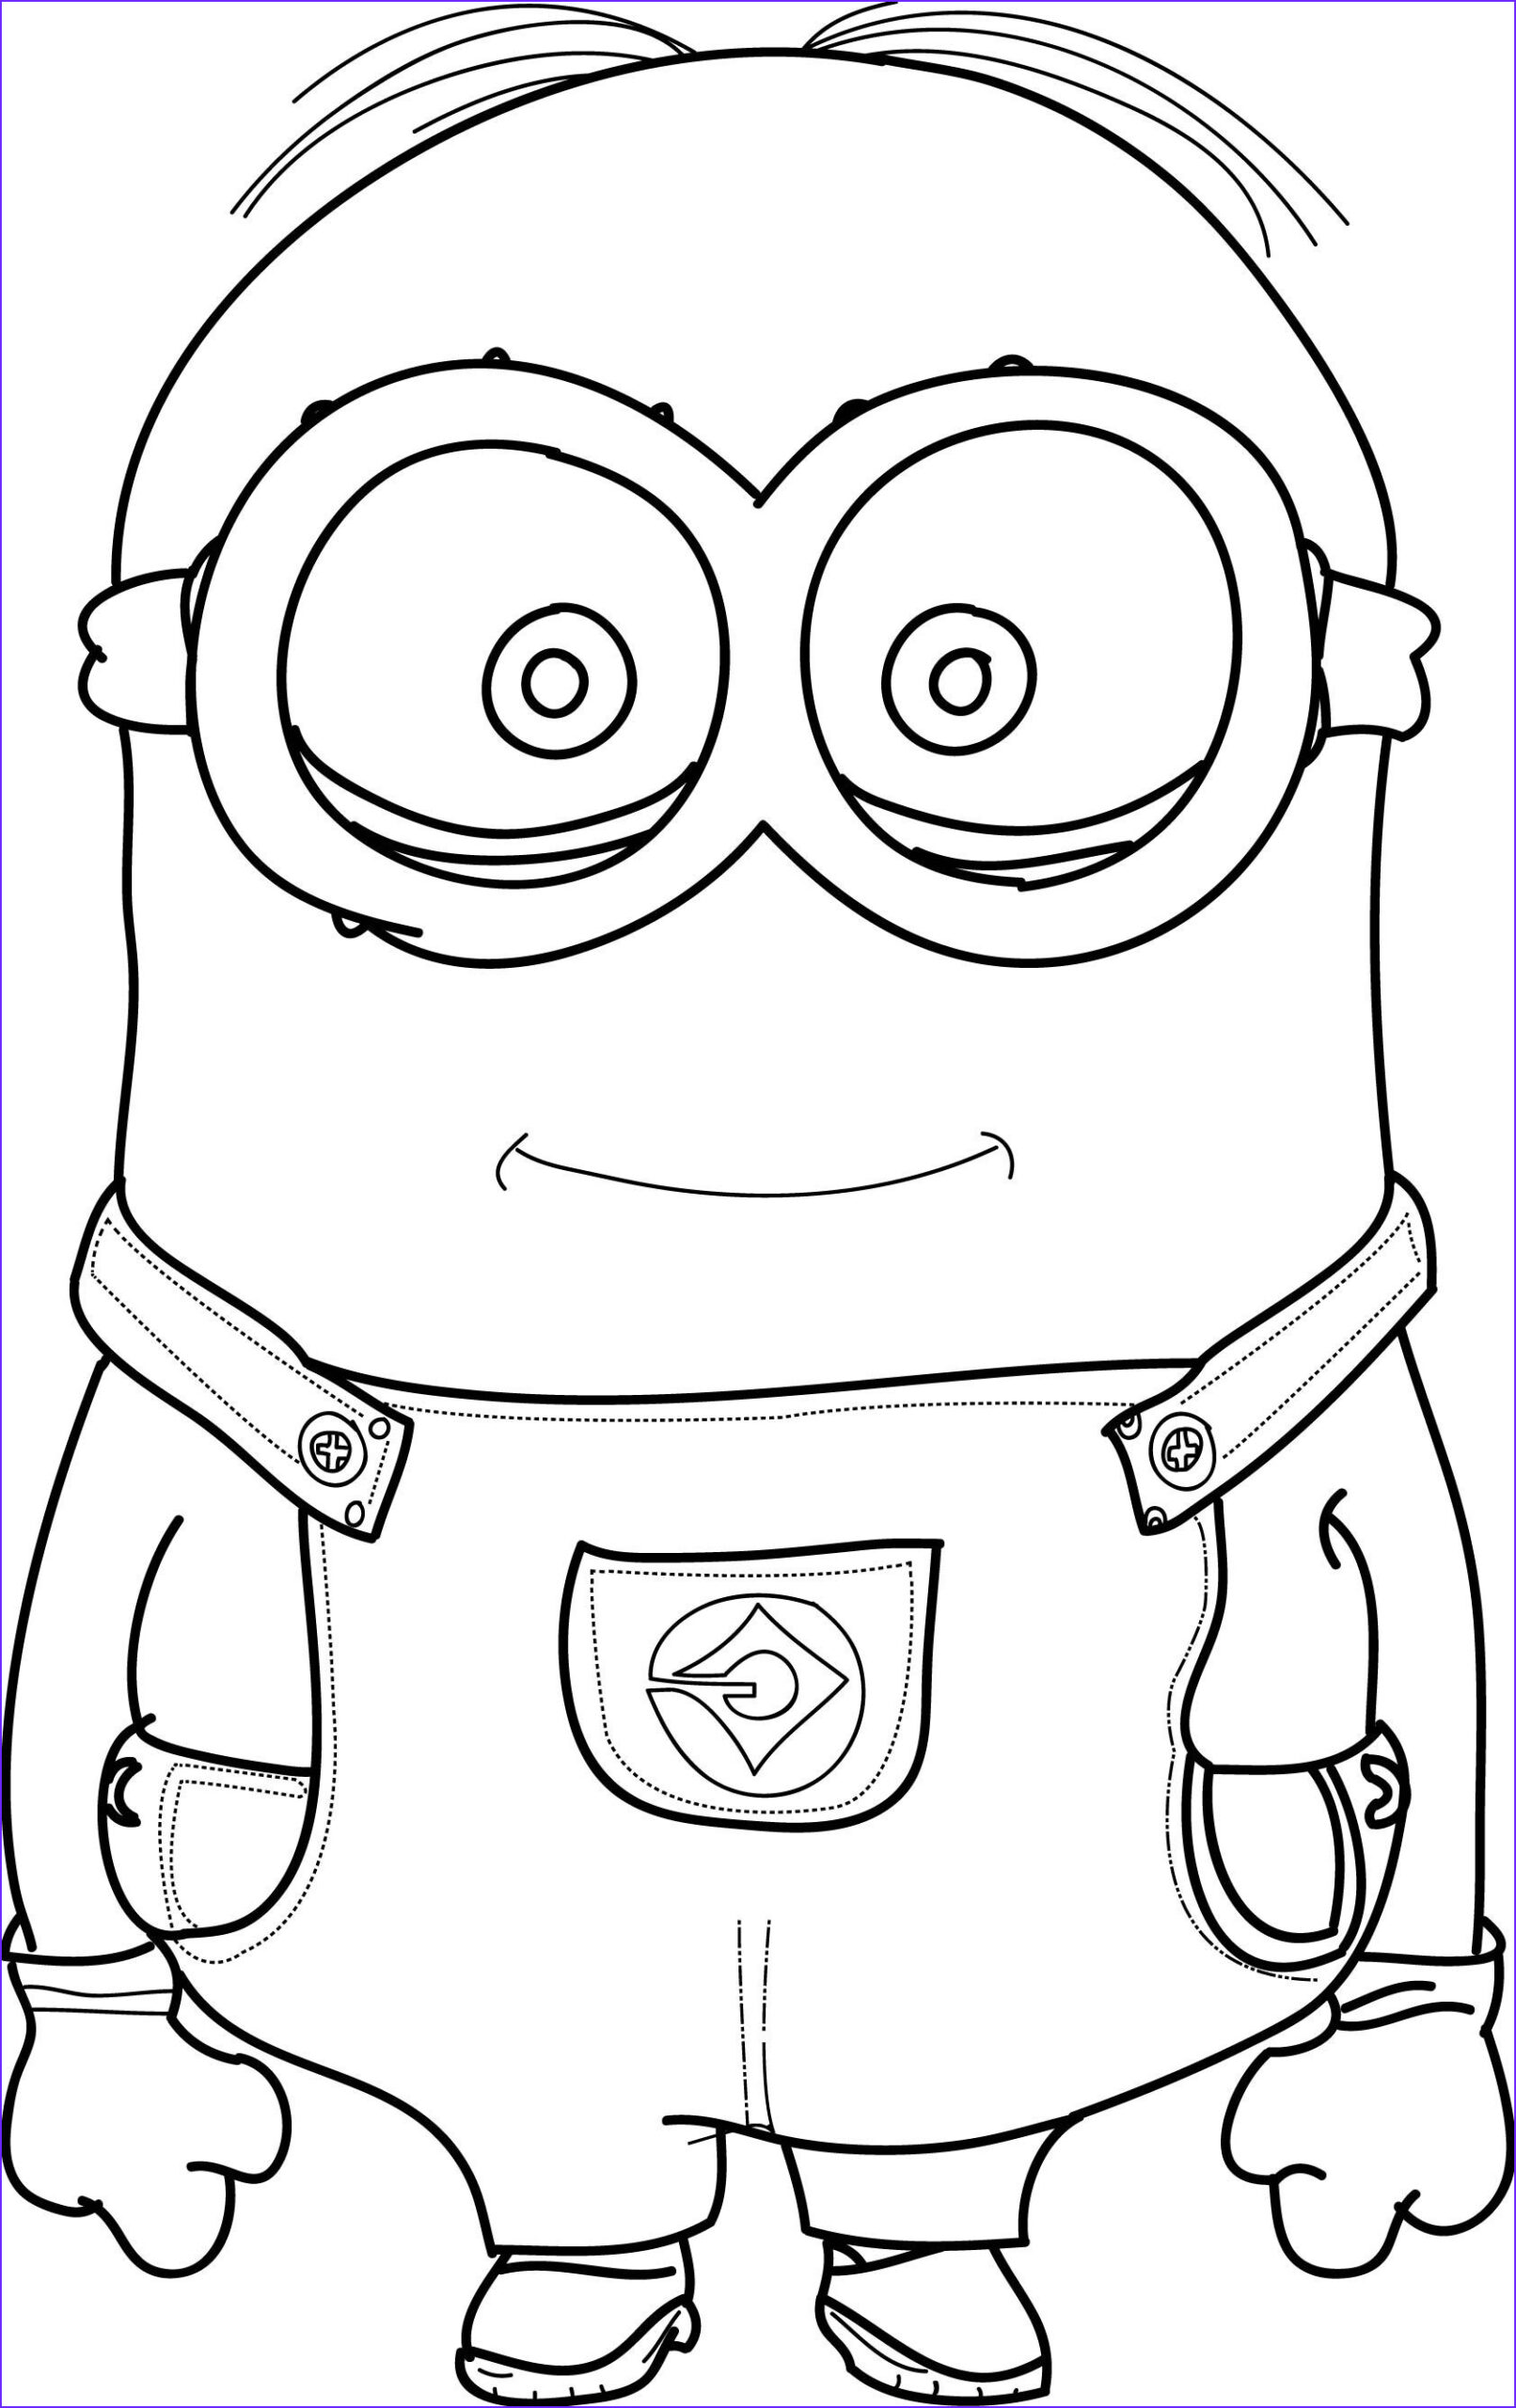 Minion Coloring Sheets Luxury Image Cool Minions Coloring Pages Wecoloringpage